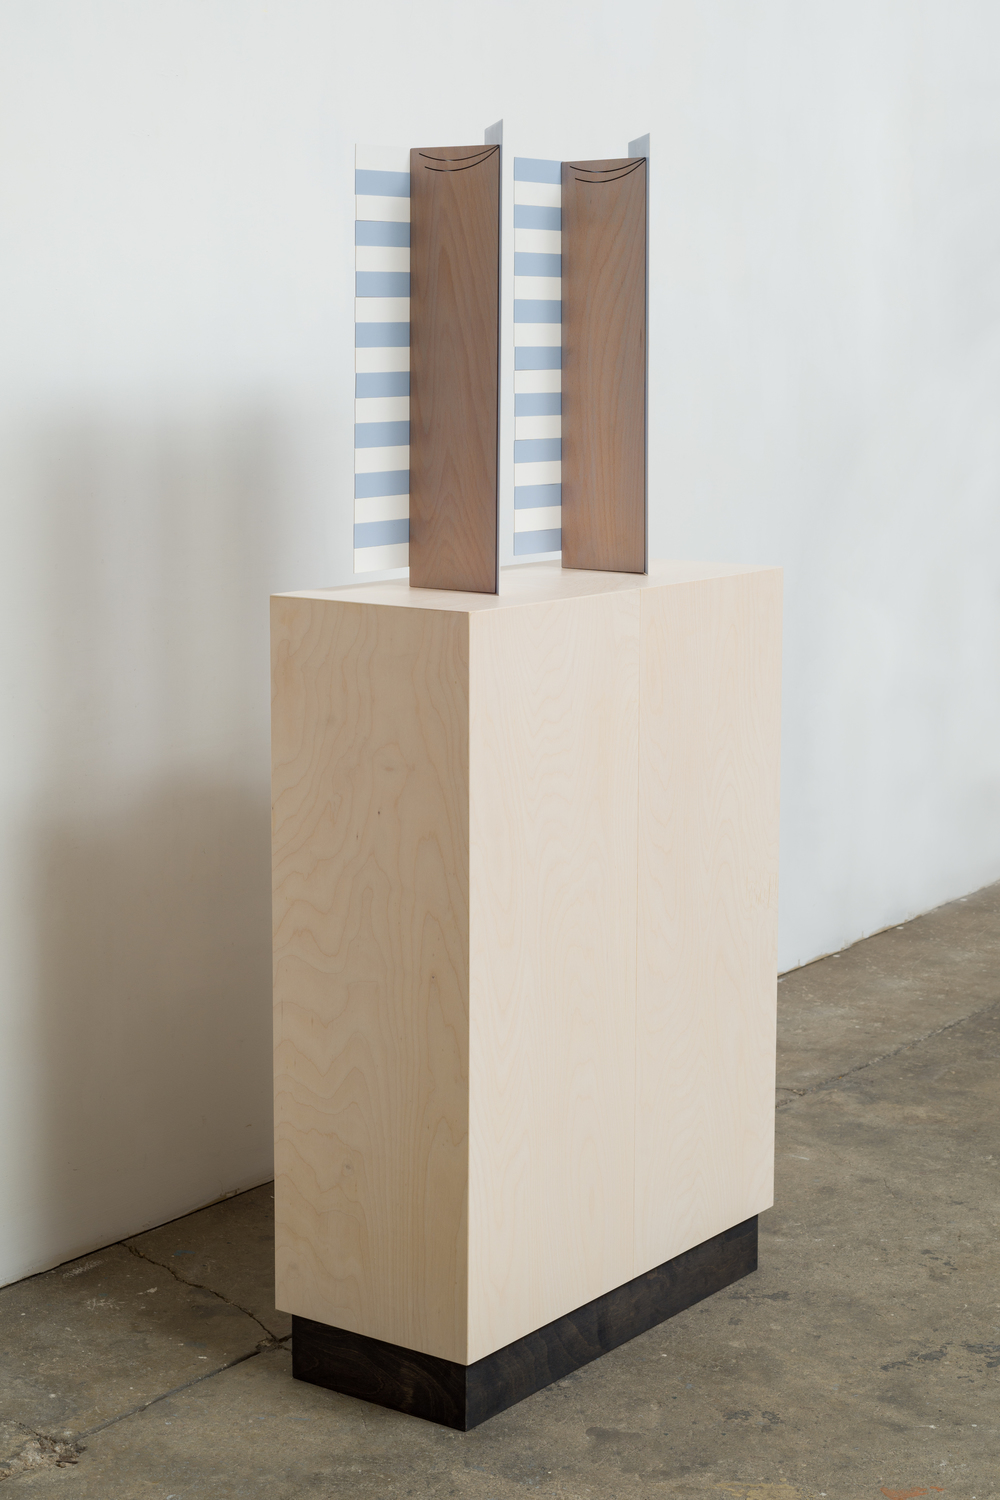 Screen (Double/Stripes) 2014 Euro-beech hardwood, steel, copper rivets, enamel, wax 2 parts, each: 48.2 x 20.5 x 12.7 cm / 19 x 8 x 5 in Plinth: 83.8 x 60.9 x 25.4 cm / 33 x 24 x 10 in